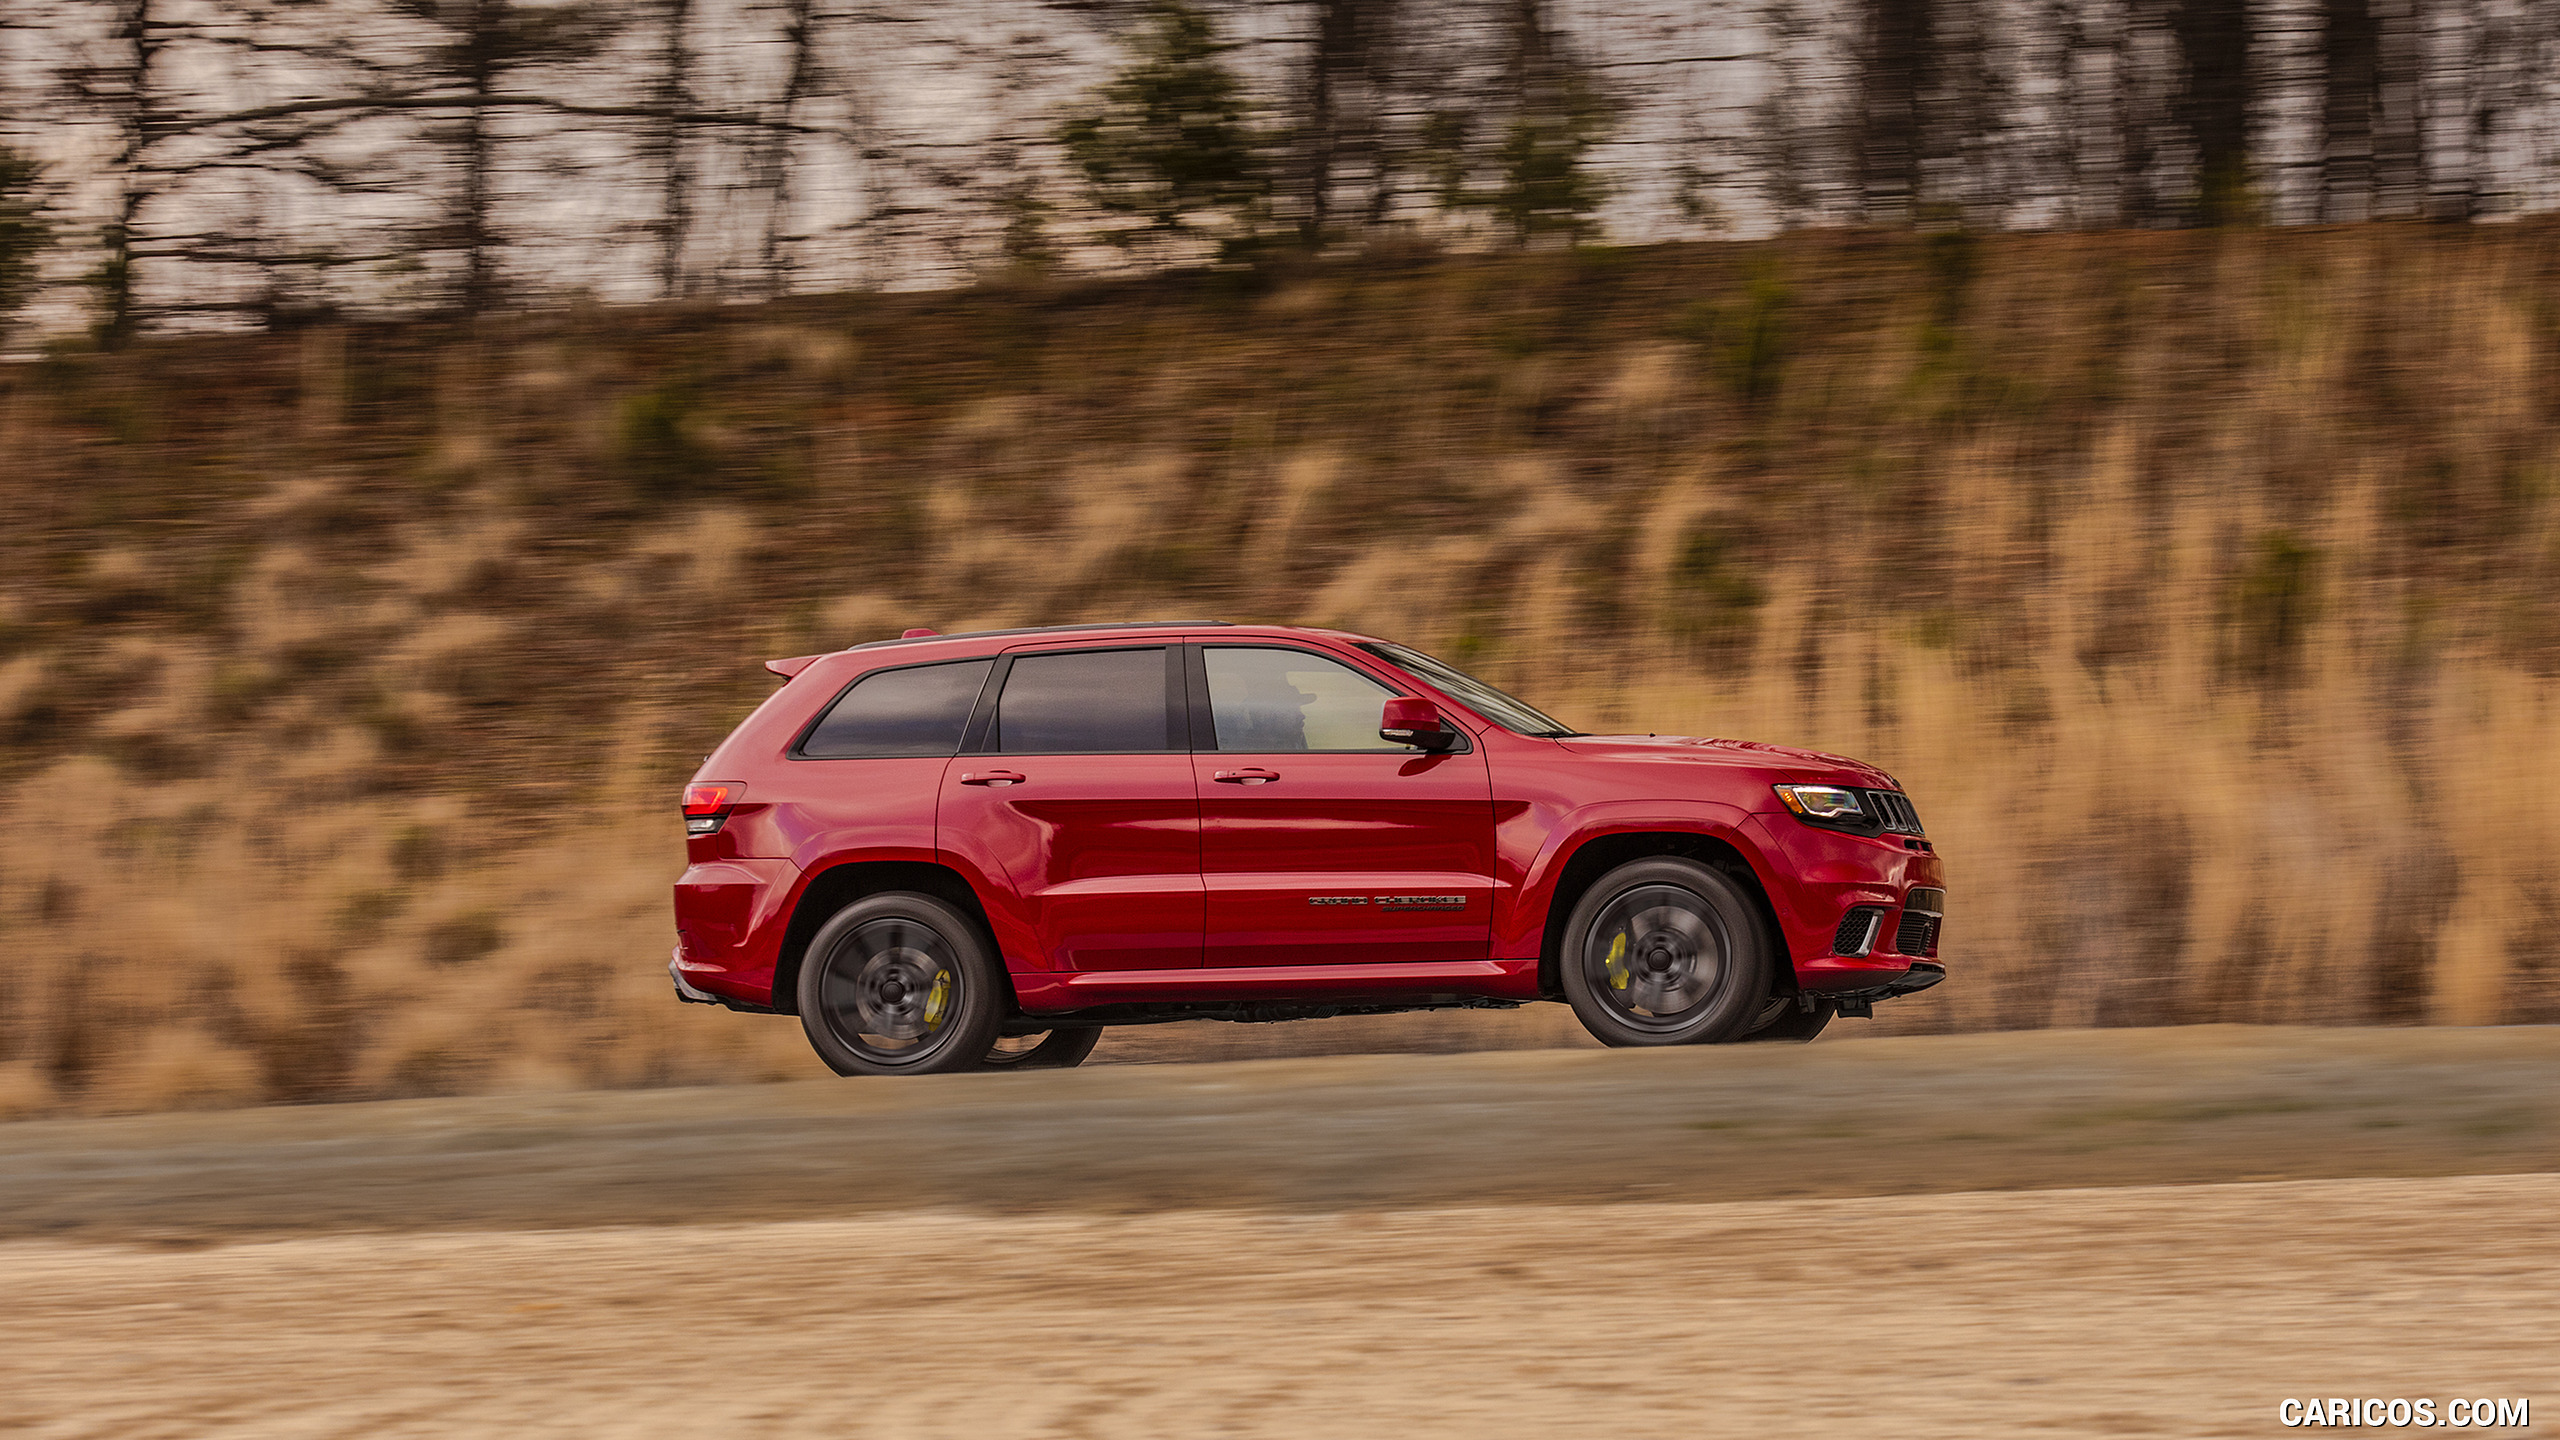 2018 Jeep Grand Cherokee Supercharged Trackhawk   Side HD 2560x1440